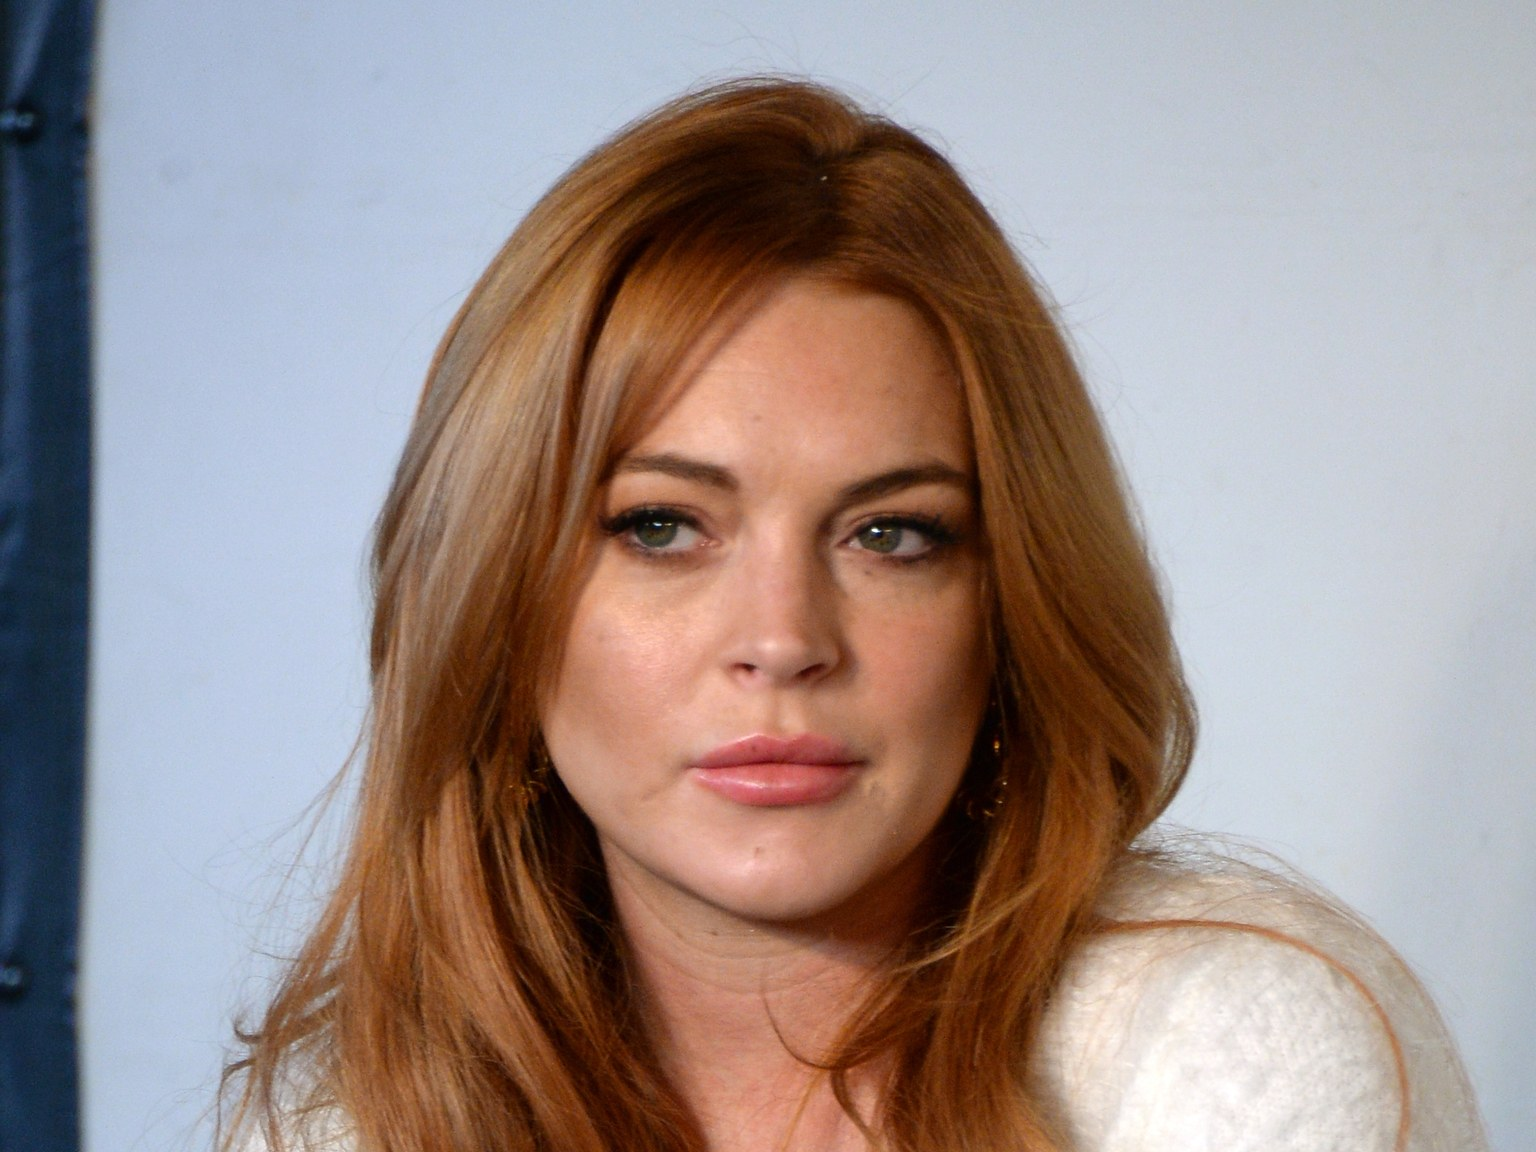 Lindsay Lohan Still Wants to Play 'The Little Mermaid' For Disney